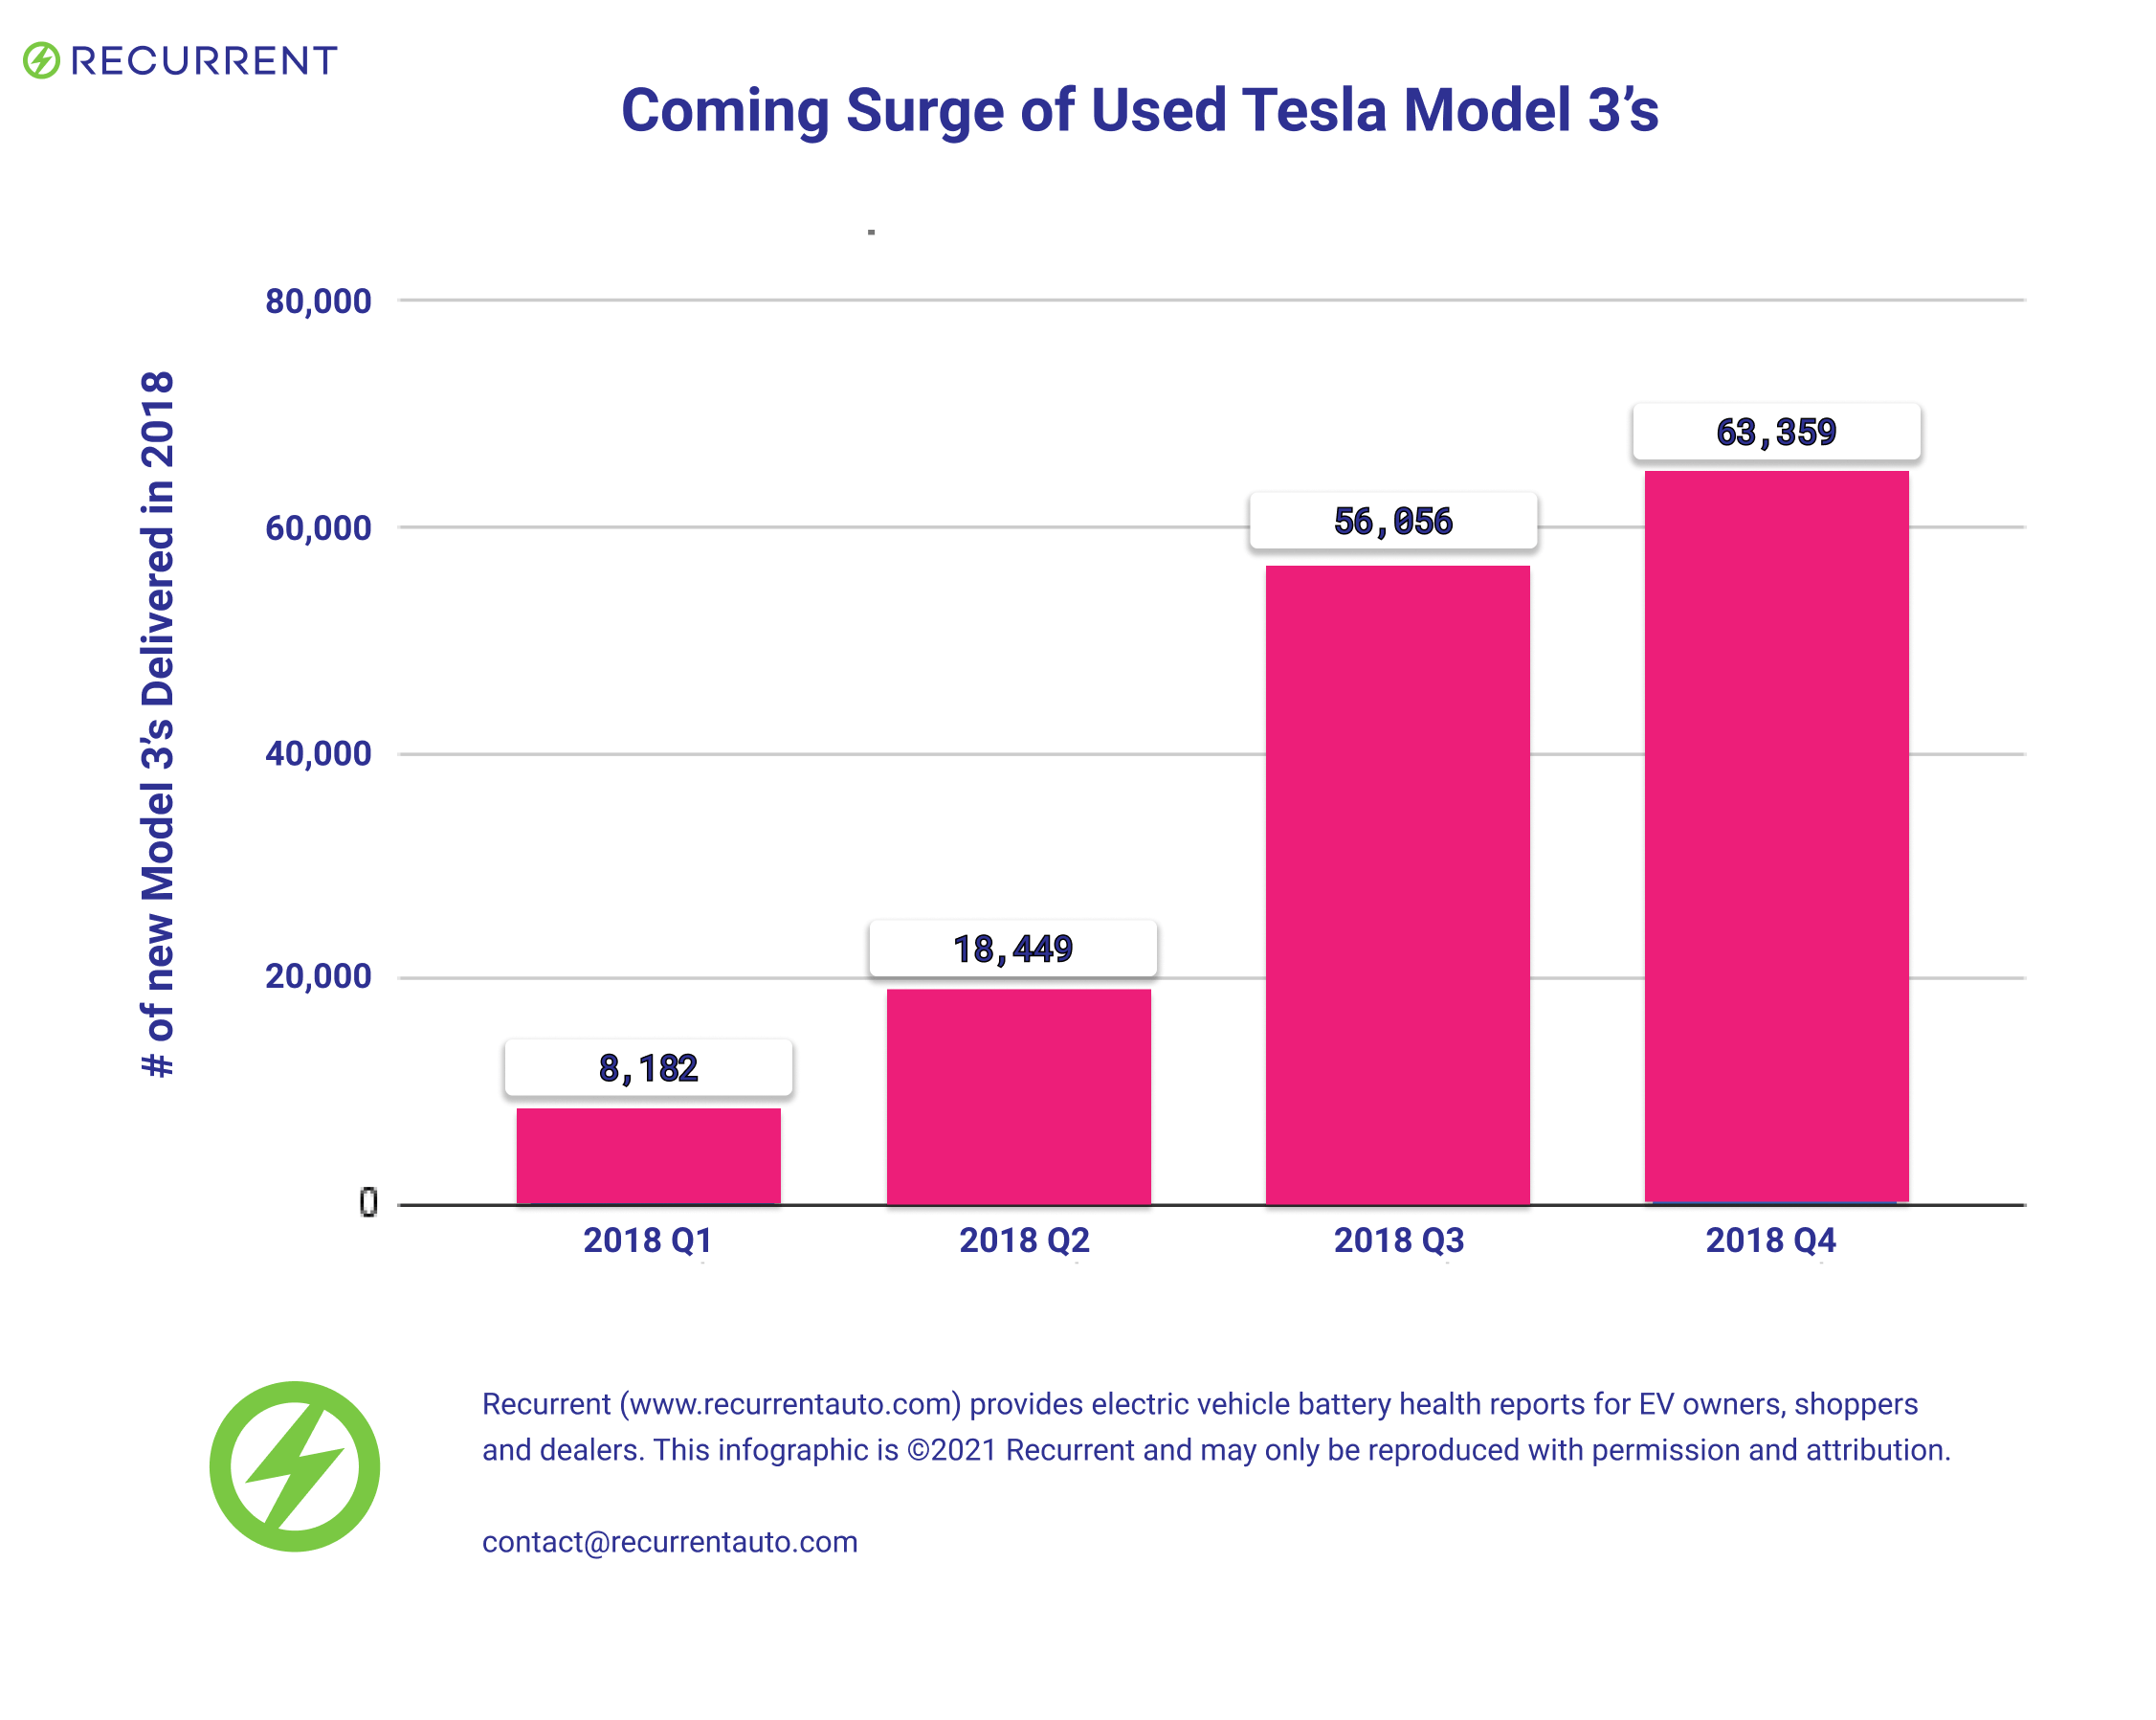 A surge of used Model 3 from Tesla